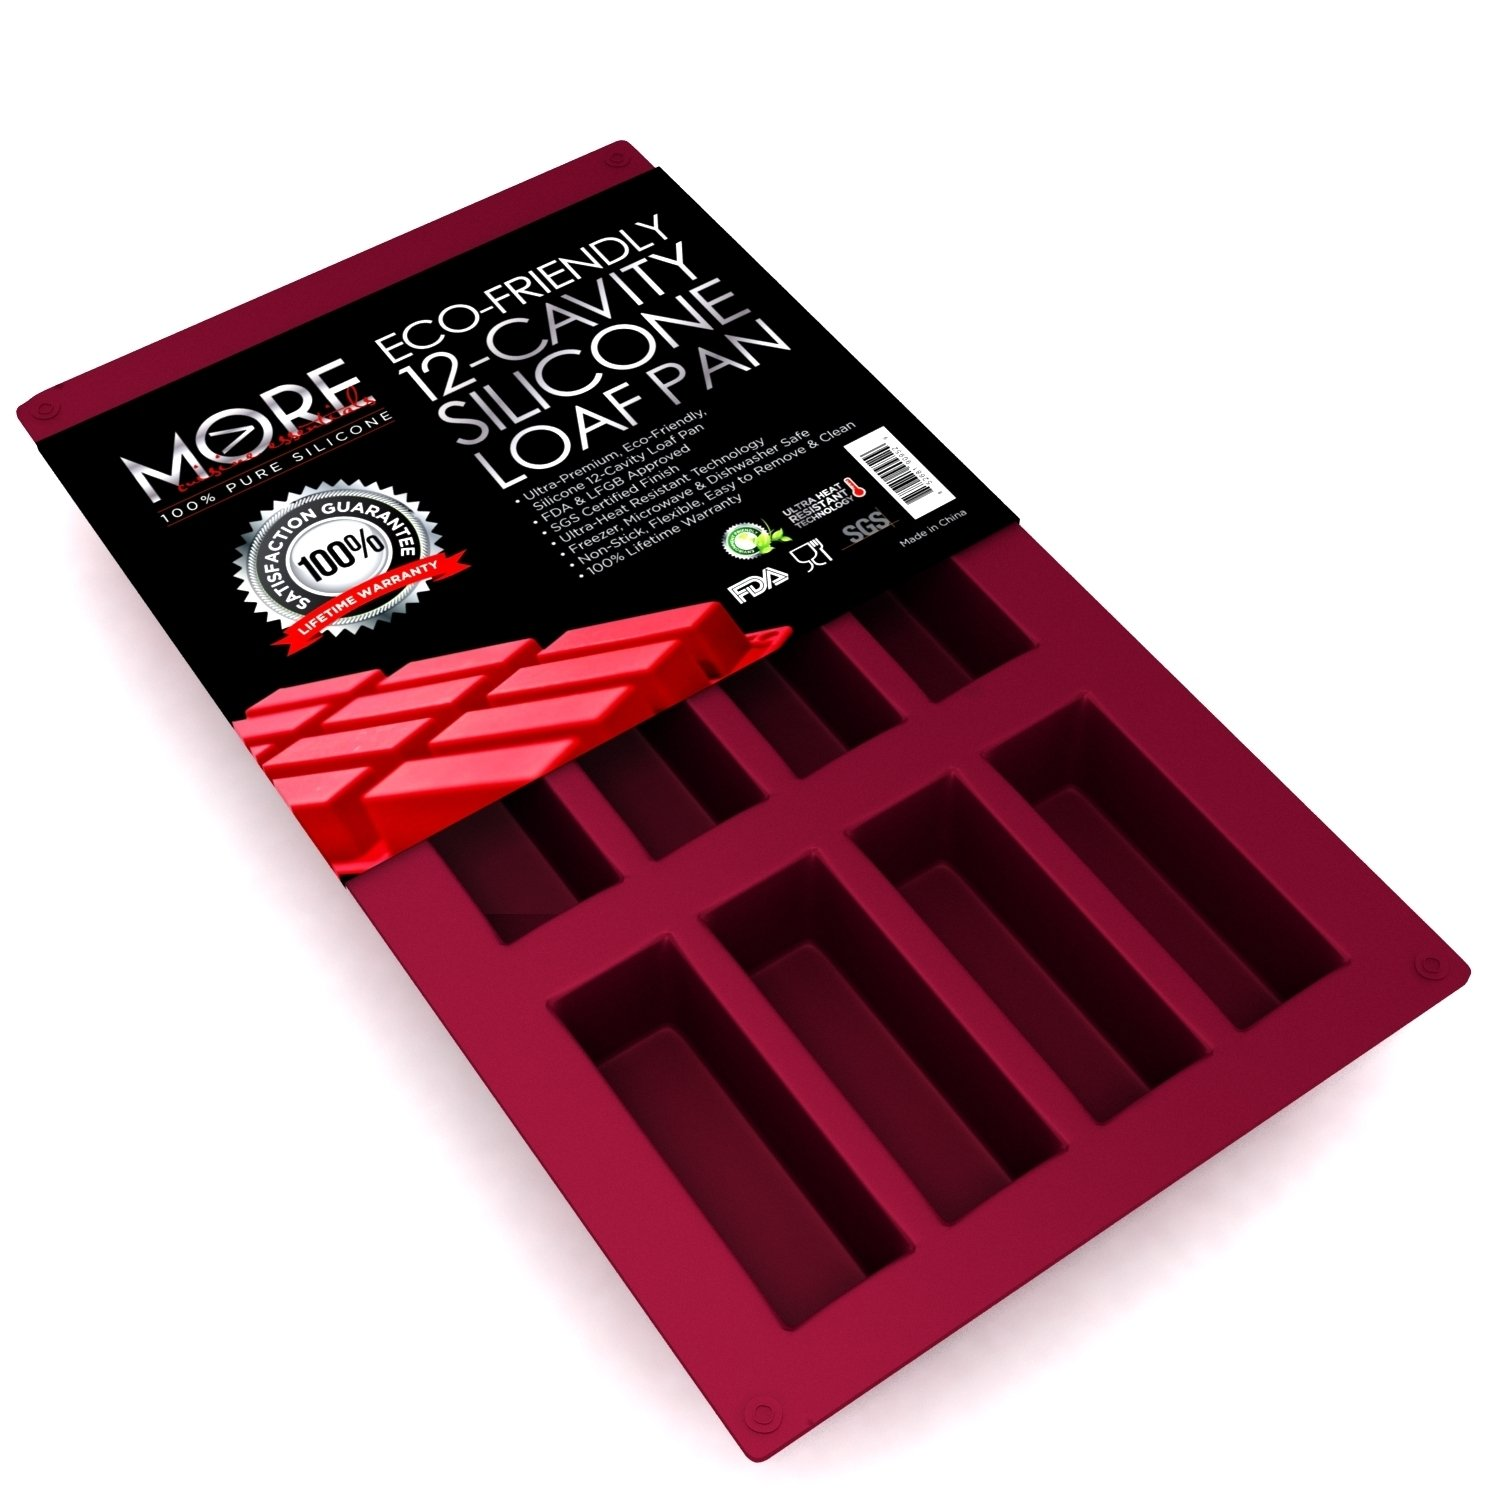 Ultra-Premium, Eco-Friendly 12-Oblong Cavity Narrow Rectangle Silicone Bars, Baking Mold/ Baking Pan for Soap, Cake, Bread, Cupcake, Cheesecake, Cornbread, Muffin, Brownie, and More . 29.5 x 17.5 x 1.3, Burgundy Wine by More Cuisine Essentials BG-1203X, by More Cuisine Essentials B00SH71SGI